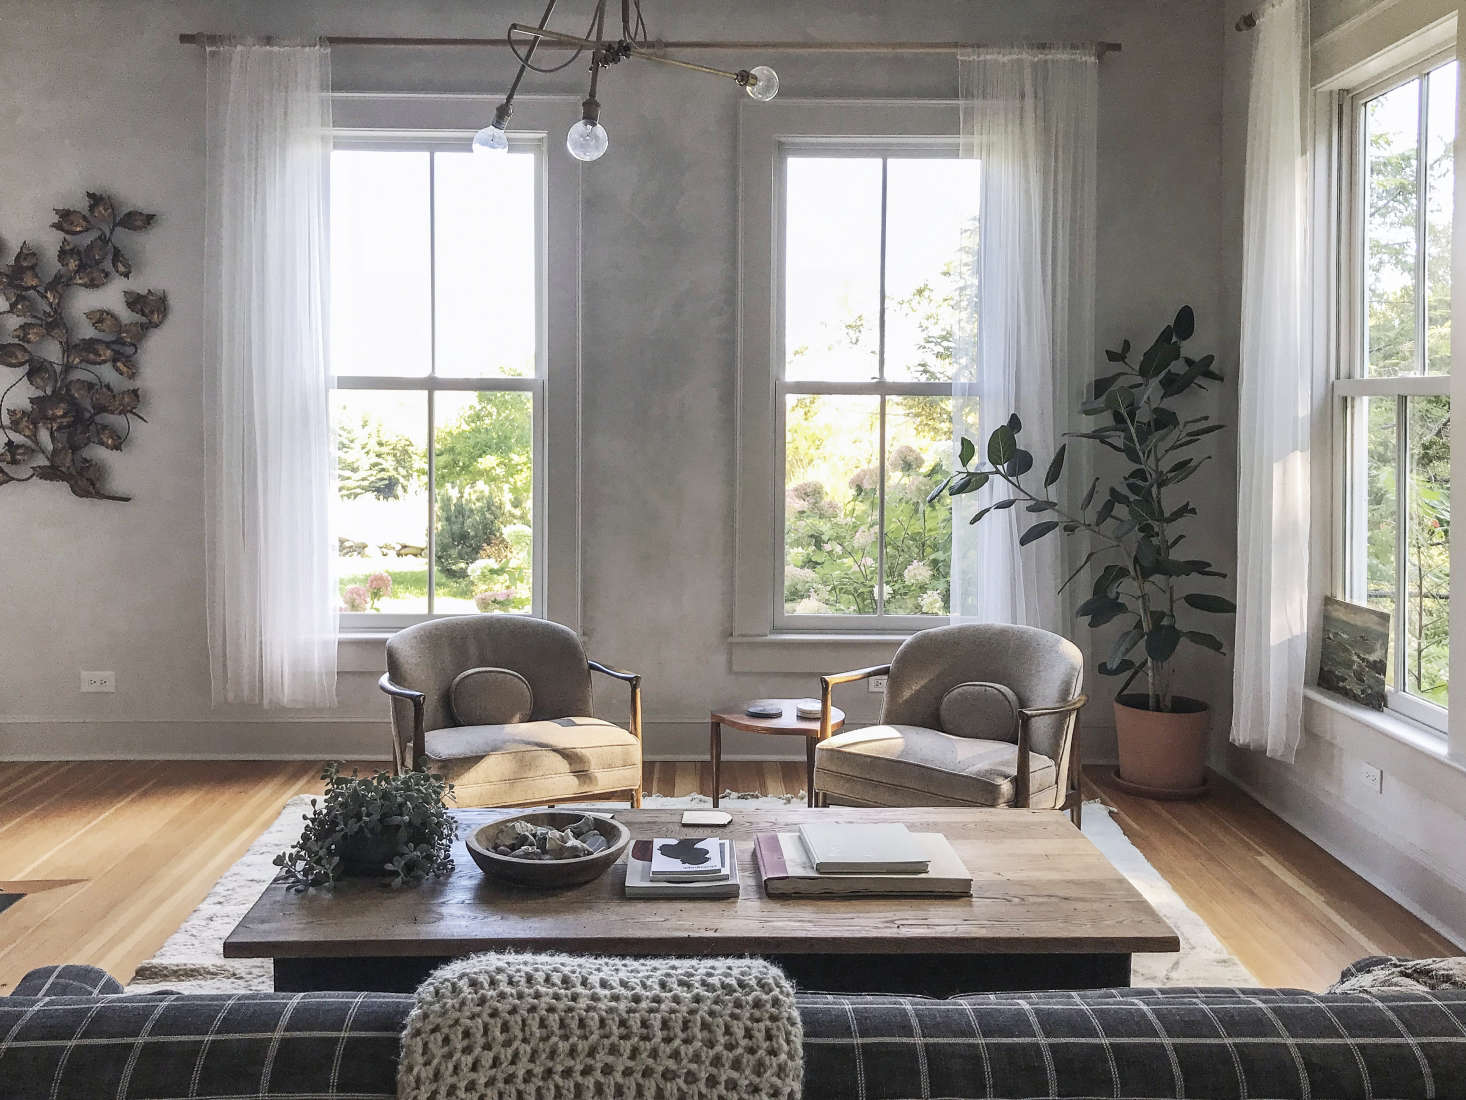 new house remodel in maine by jersey ice cream co glam eat in kitchen included. Black Bedroom Furniture Sets. Home Design Ideas